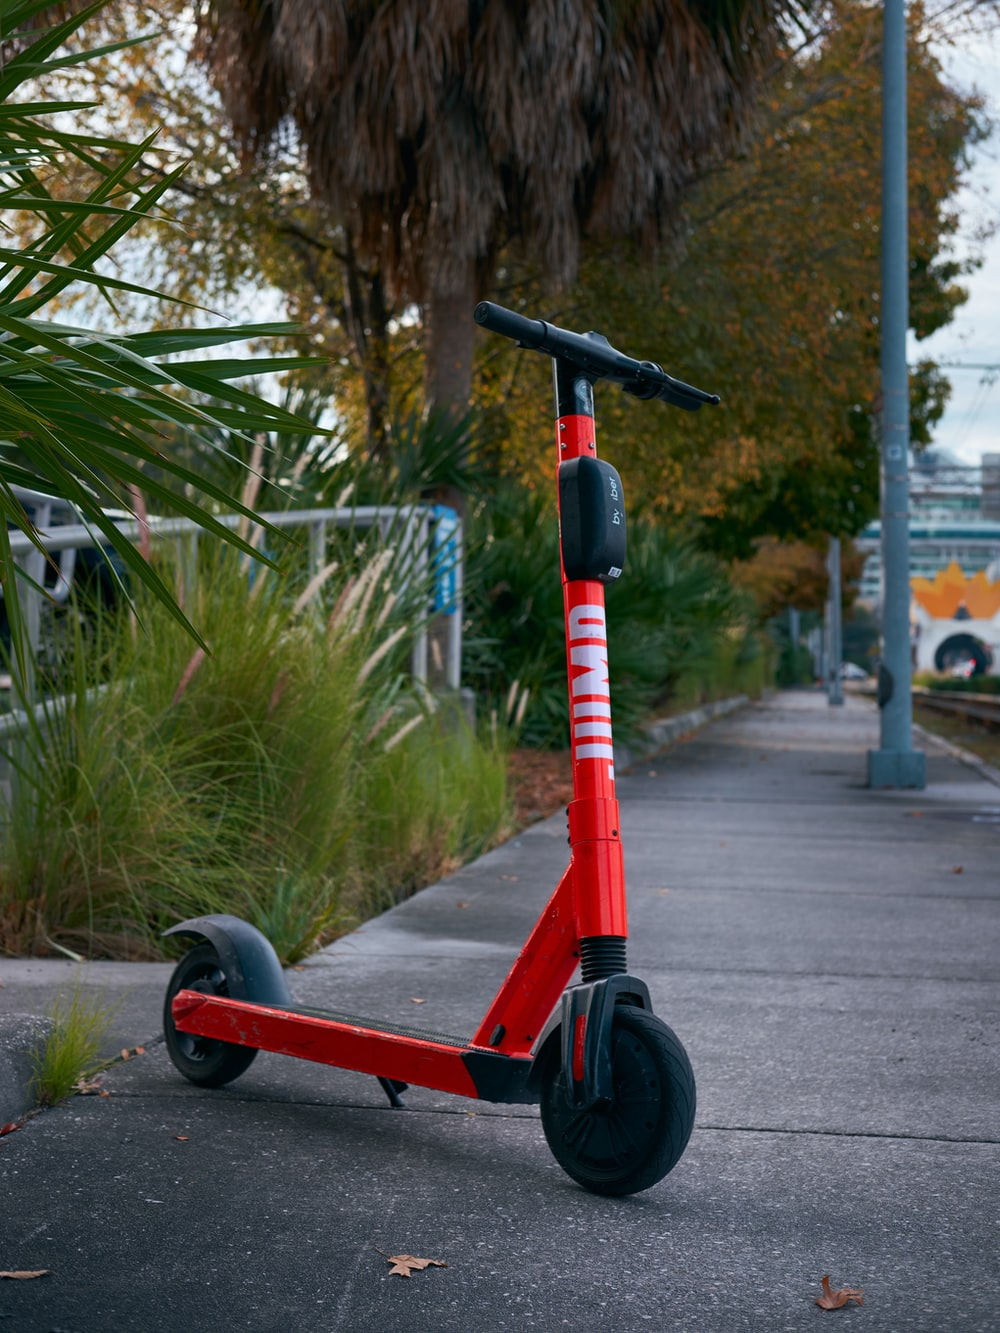 red and black kick scooter on gray concrete road during daytime